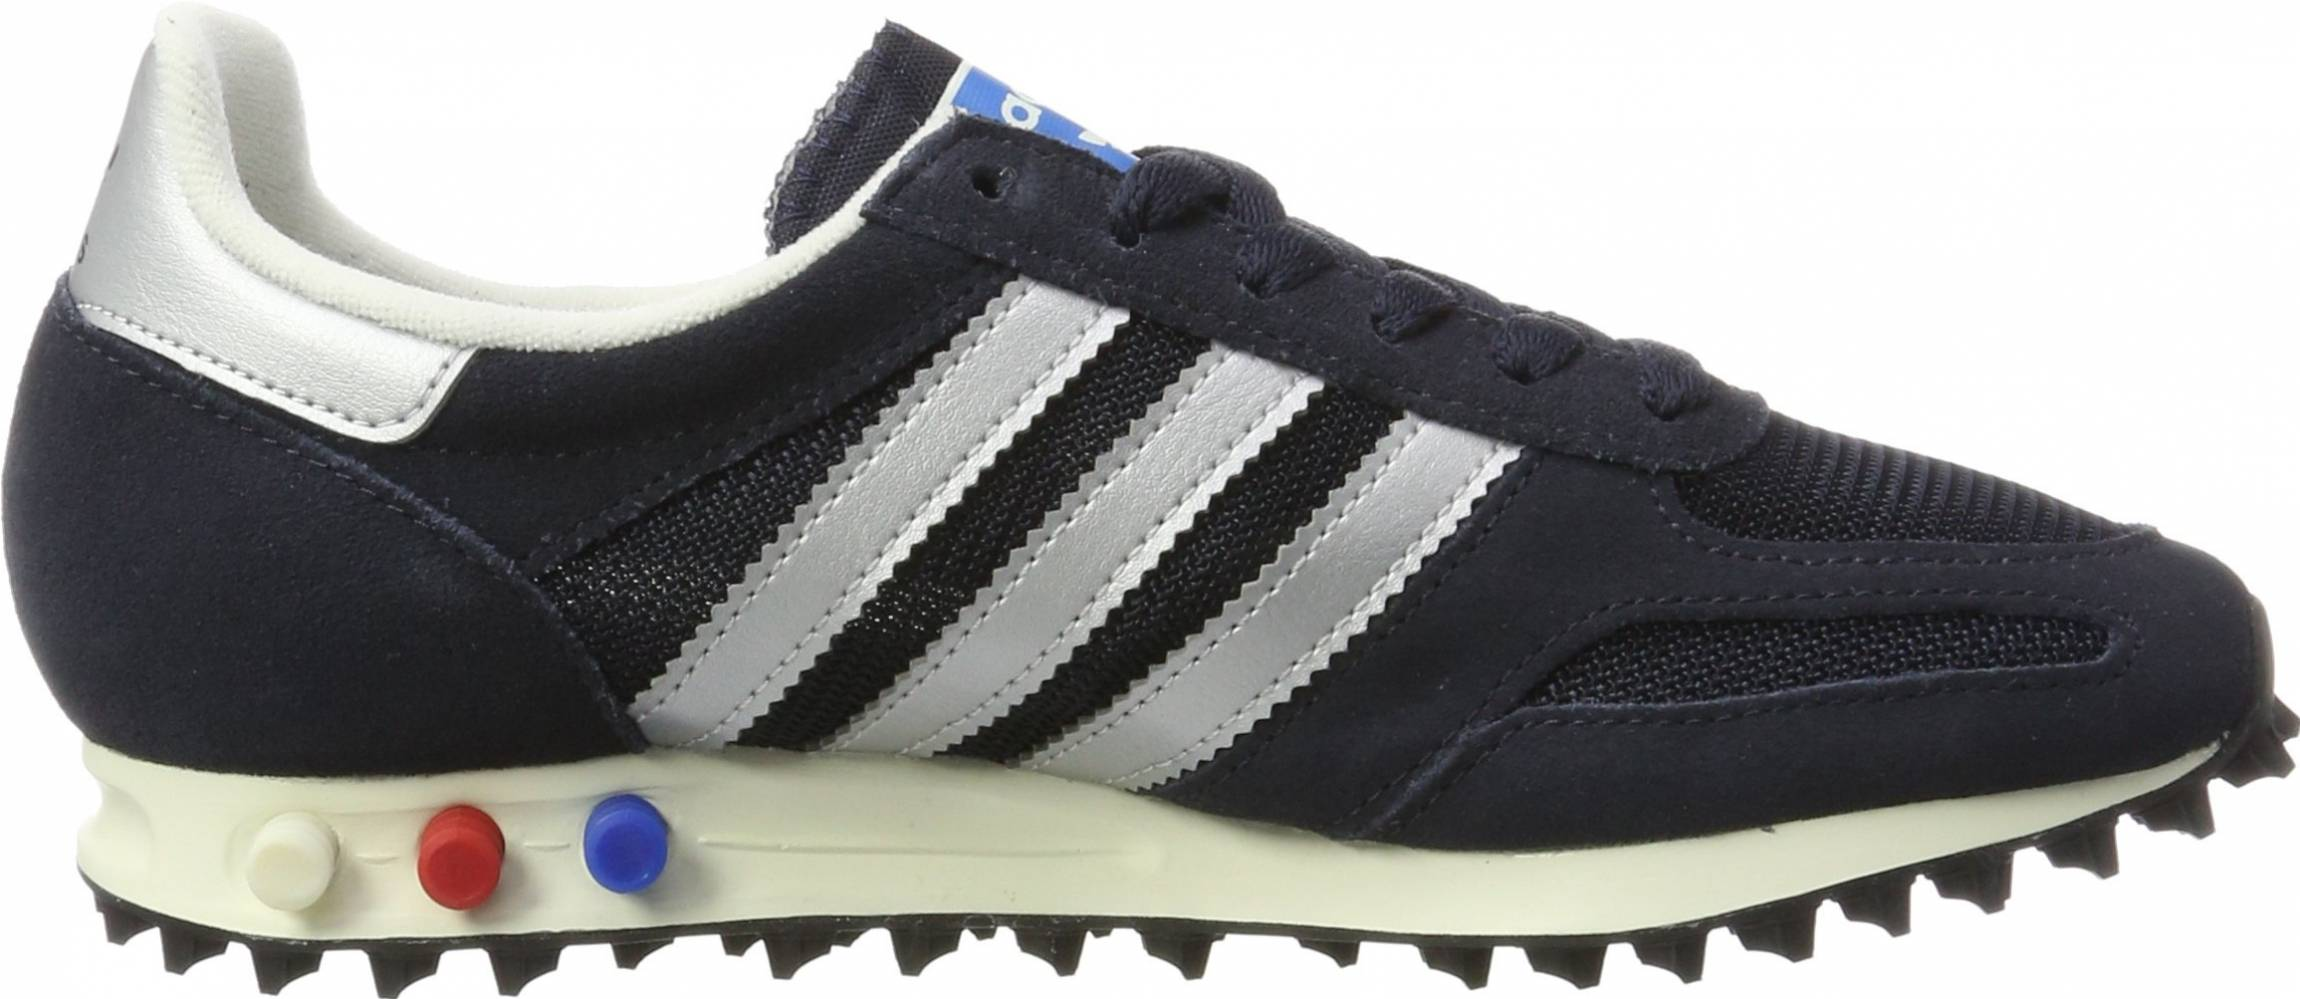 Viaje Proverbio brazo  11 Reasons to/NOT to Buy Adidas LA Trainer OG (Jan 2021) | RunRepeat